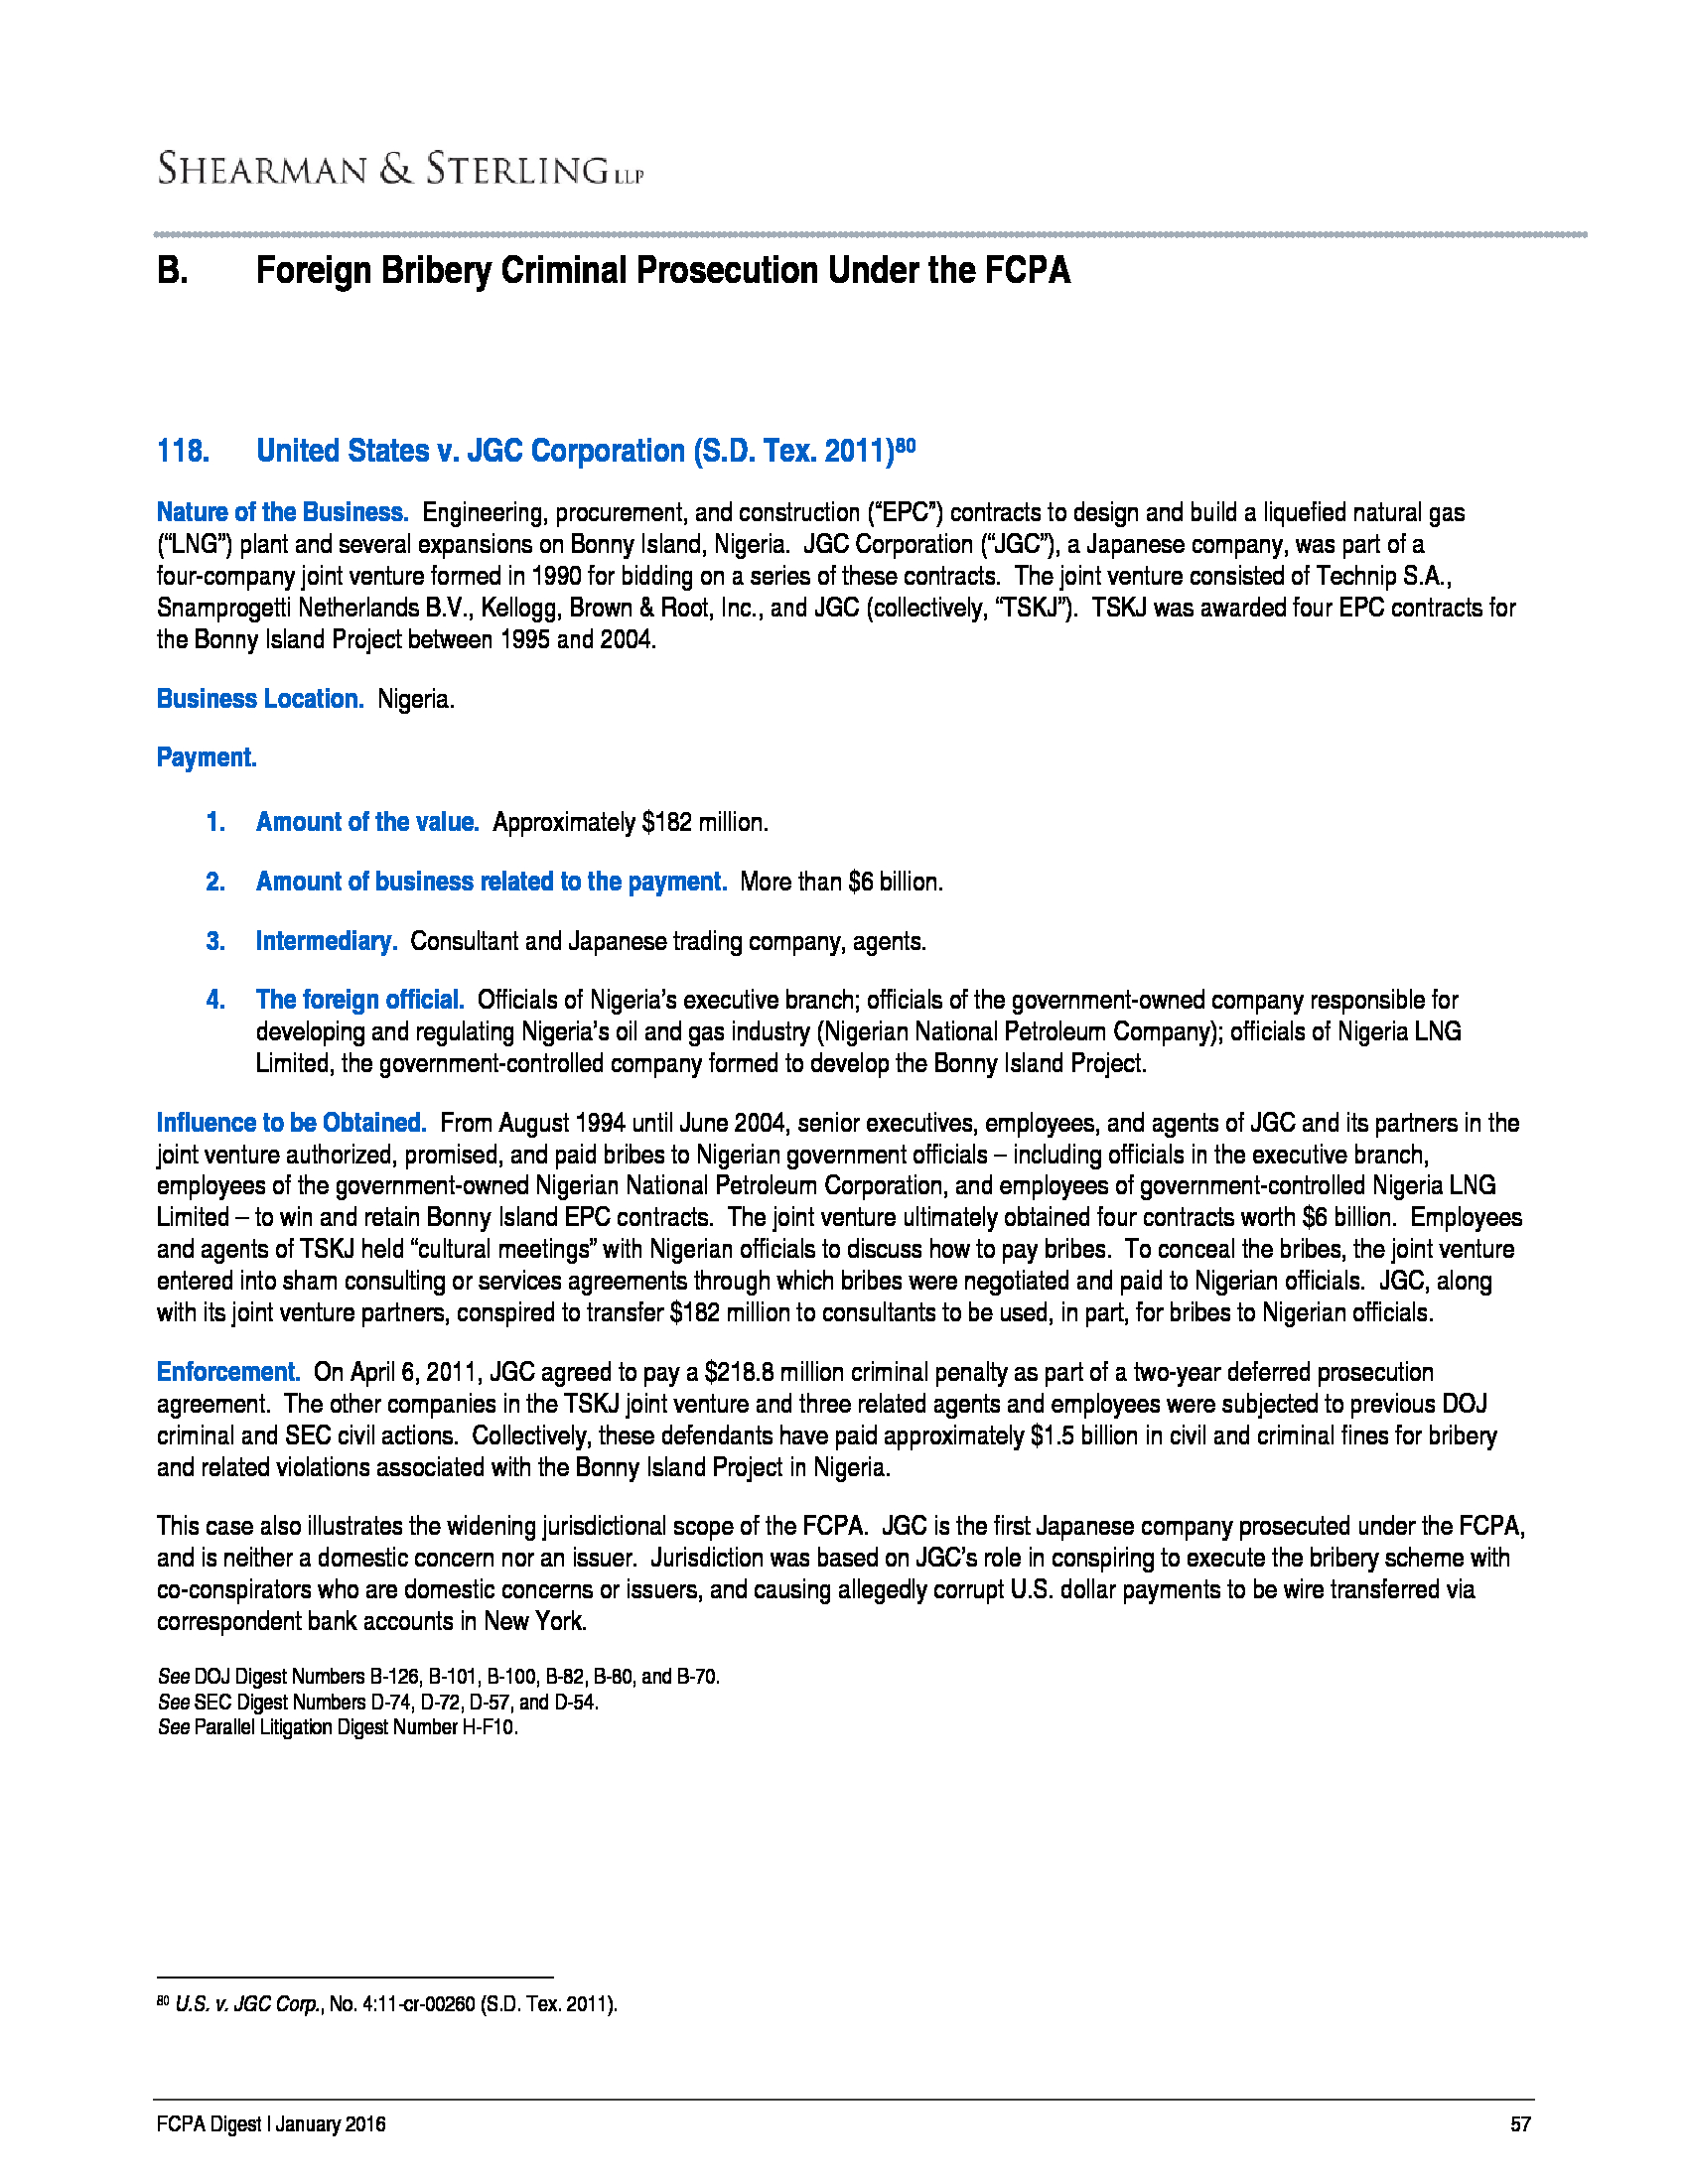 Advisorselect - Shearman & Sterling's Recent Trends and